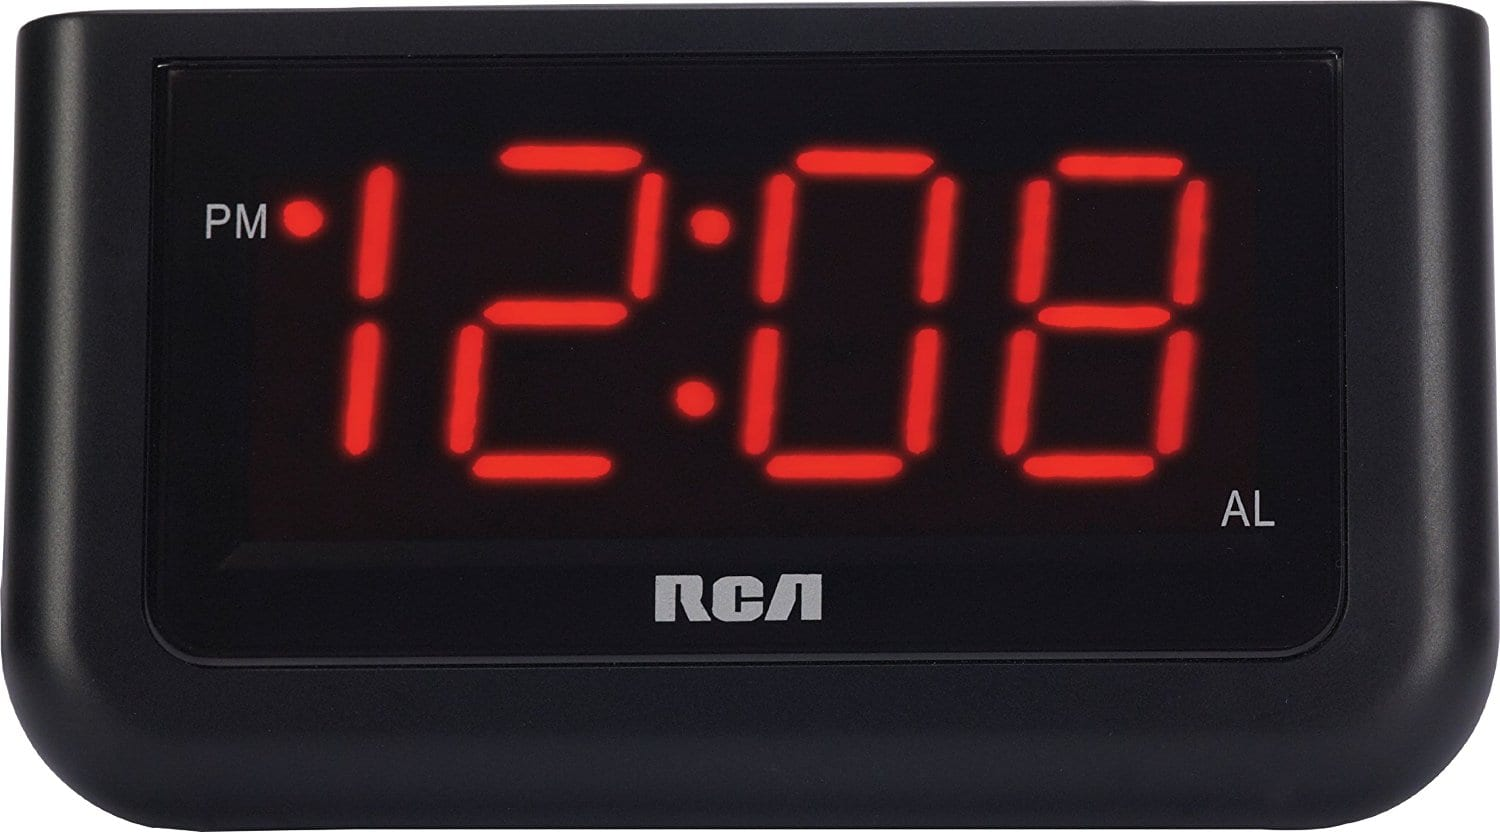 RCA digital alarm clock with large screen 1.4